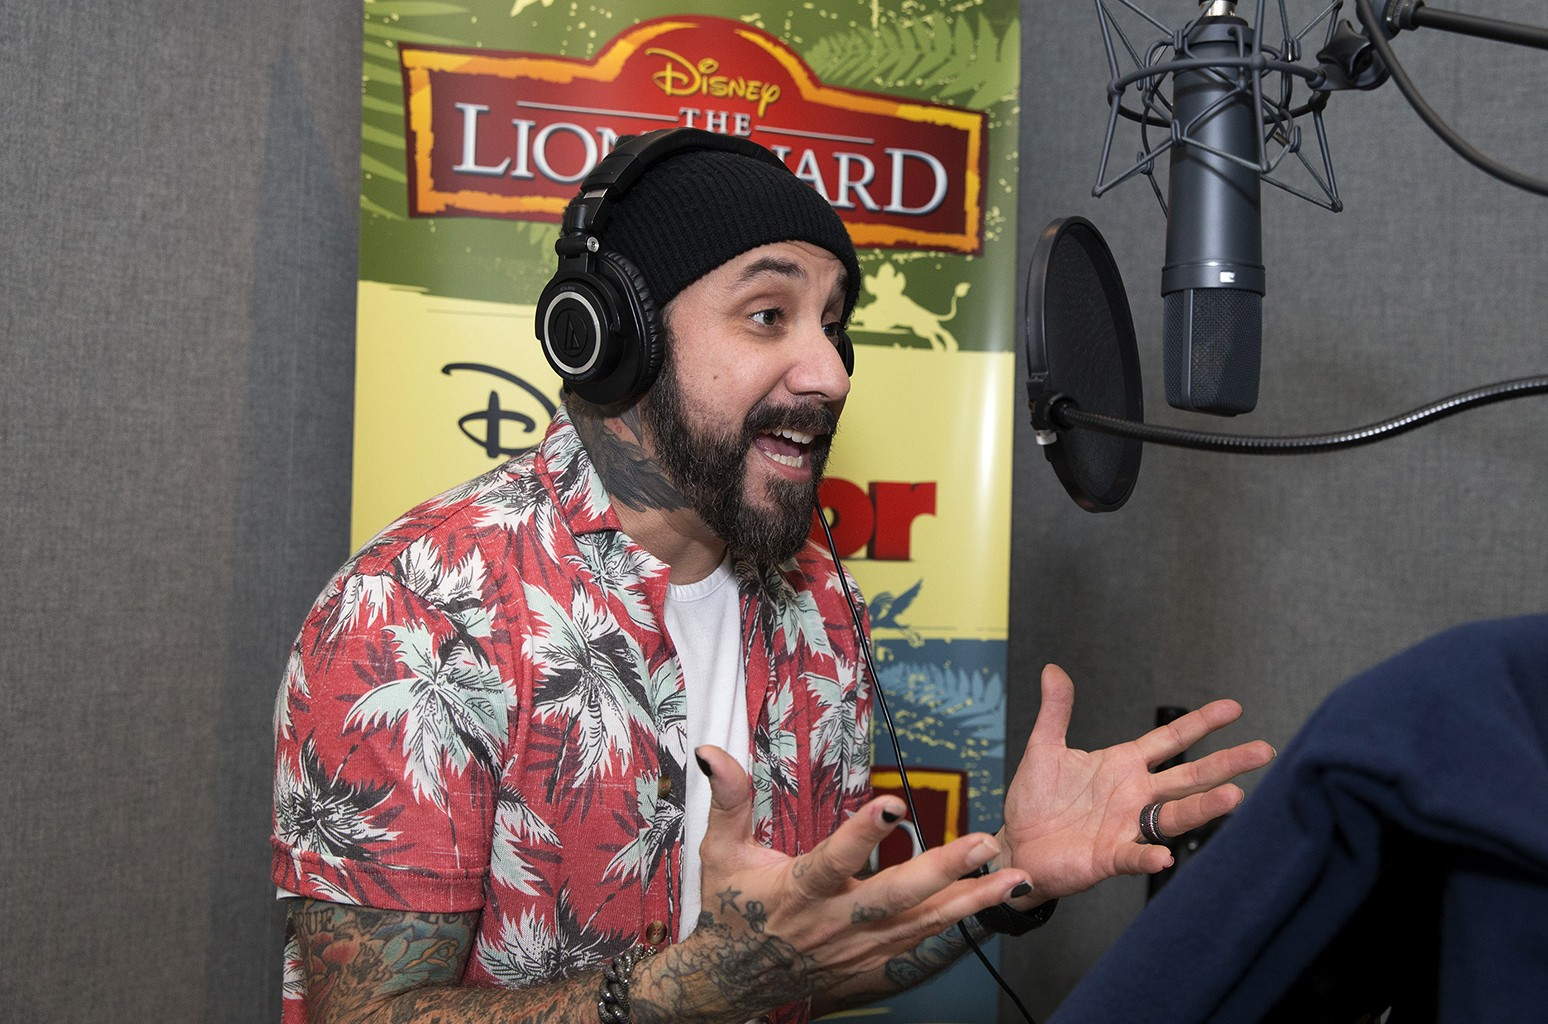 AJ McLean recording a voiceover for The Lion Guard.